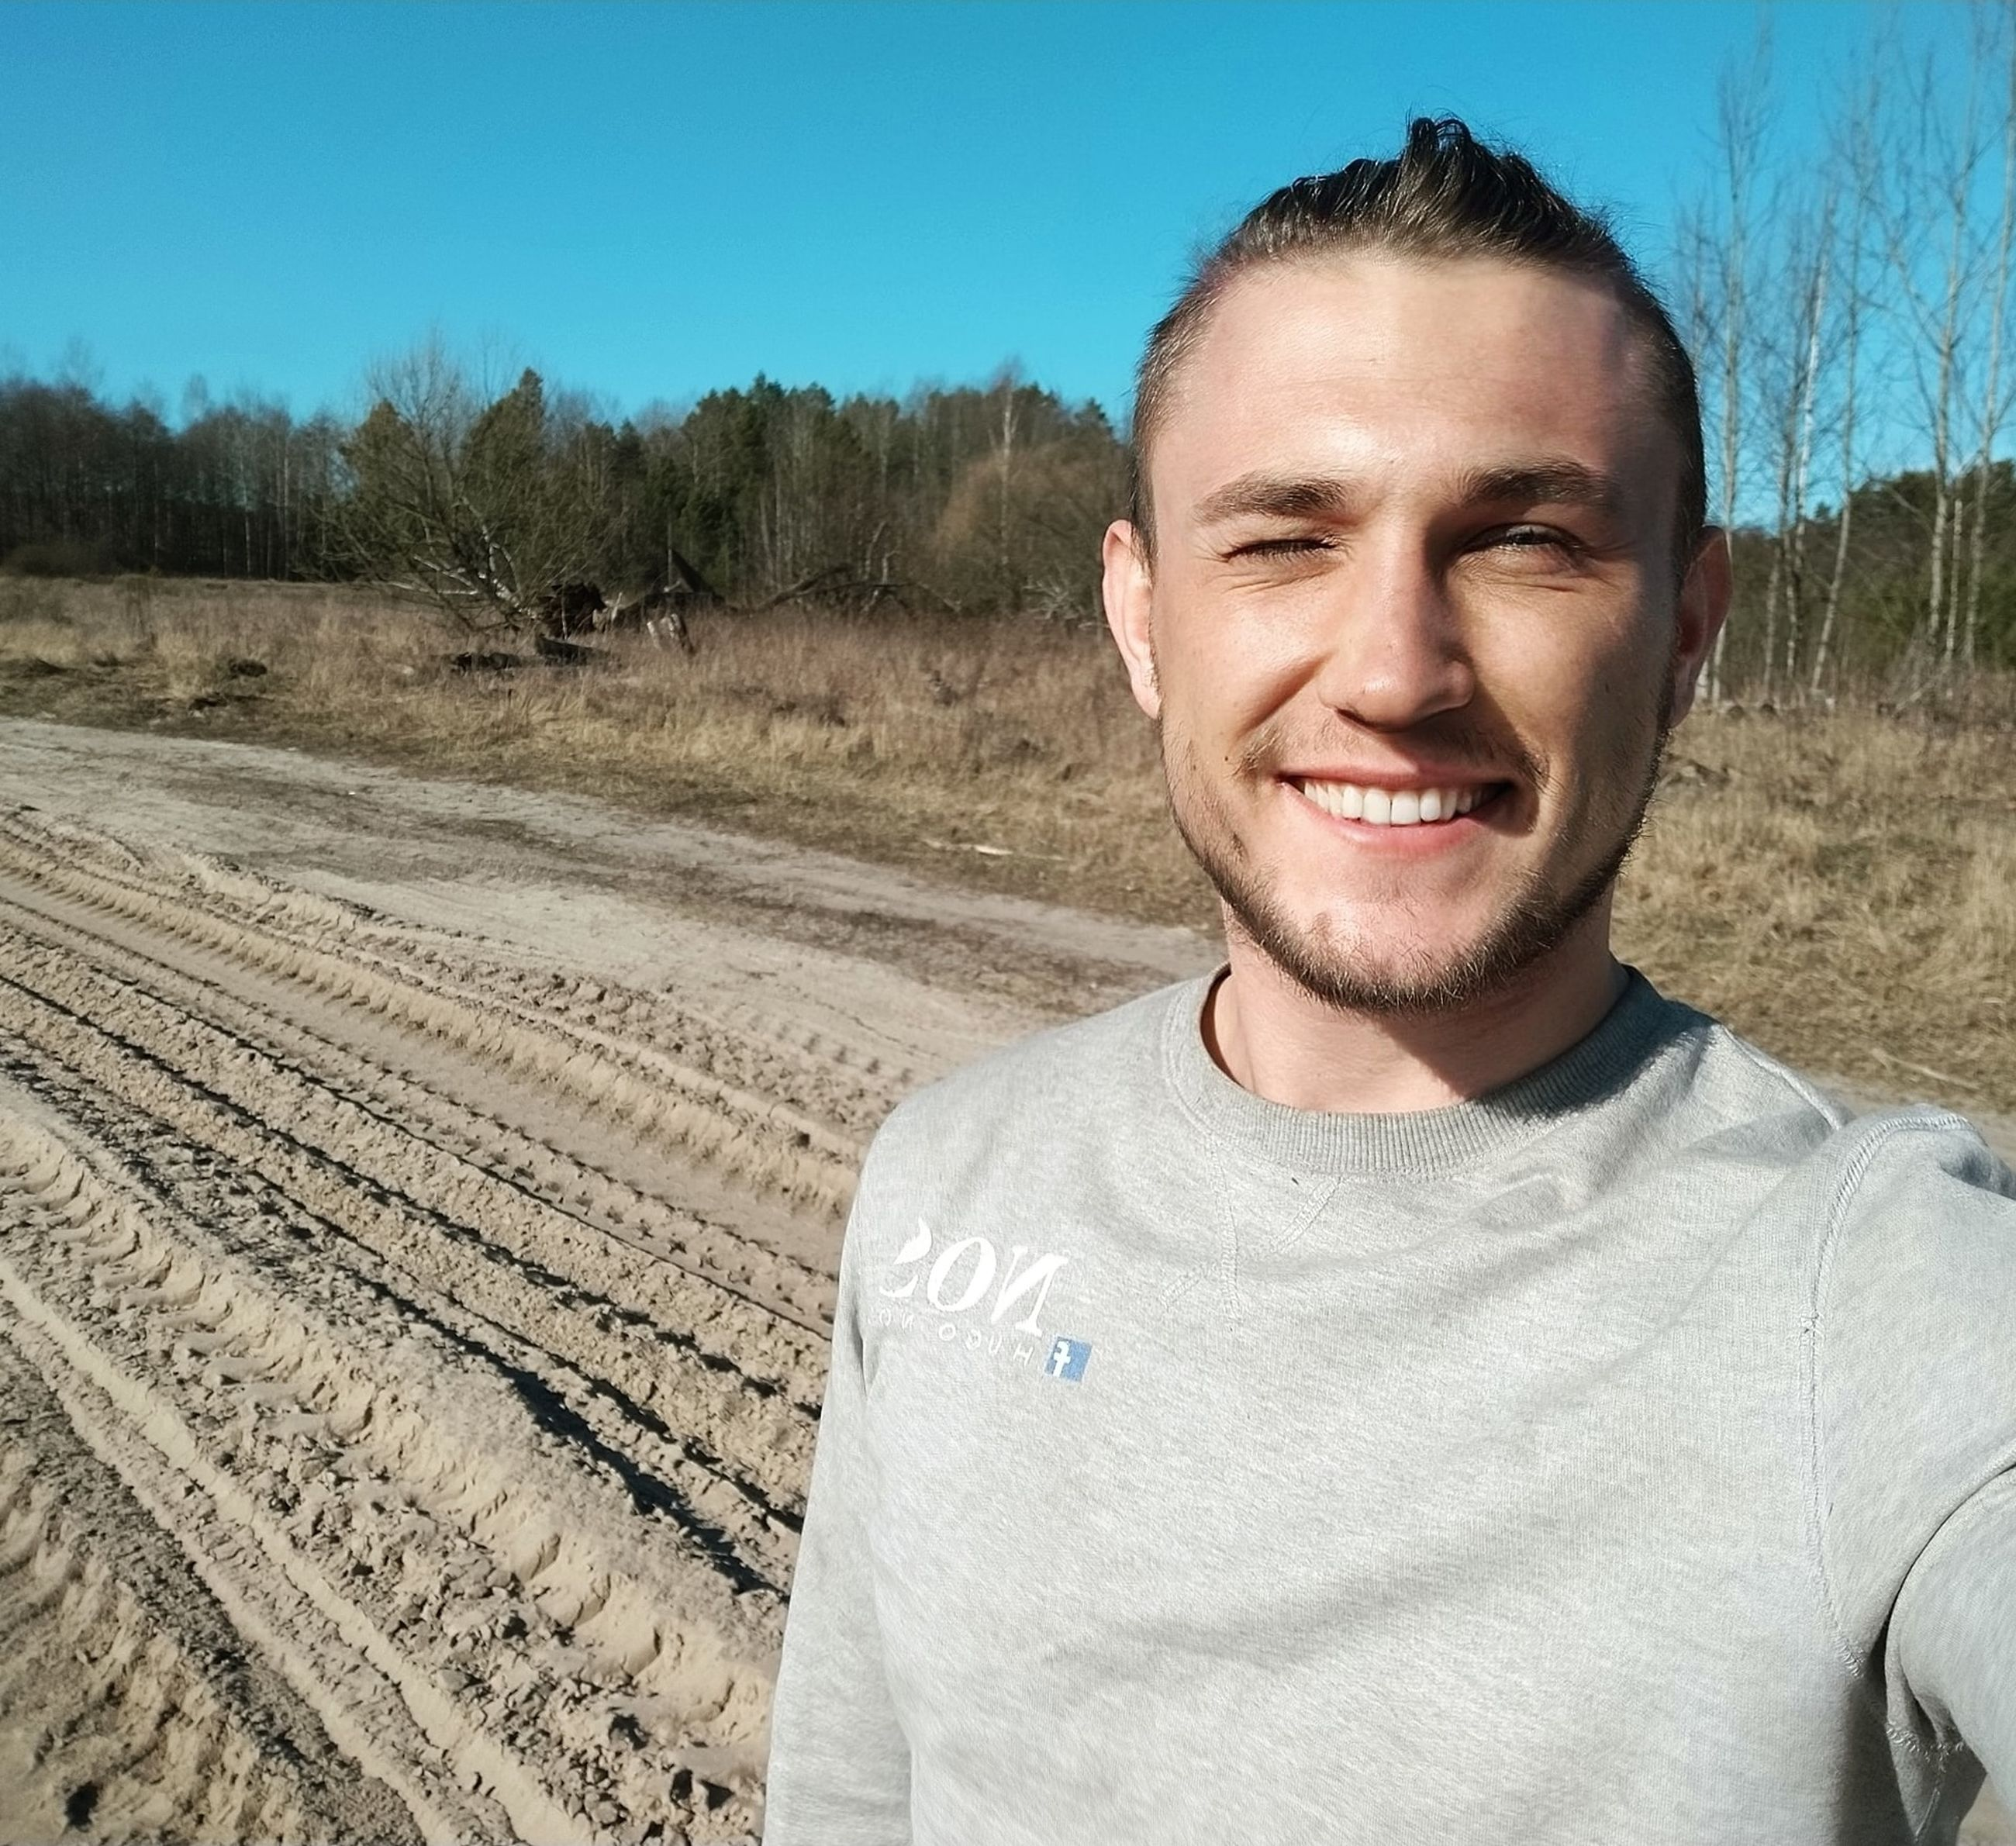 one person, smiling, portrait, adult, happiness, sky, nature, men, emotion, landscape, land, front view, young adult, rural scene, person, casual clothing, day, looking at camera, blue, clear sky, smile, environment, waist up, teeth, headshot, cheerful, outdoors, sunlight, standing, plant, field, sunny, soil, beard, dirt, lifestyles, leisure activity, tree